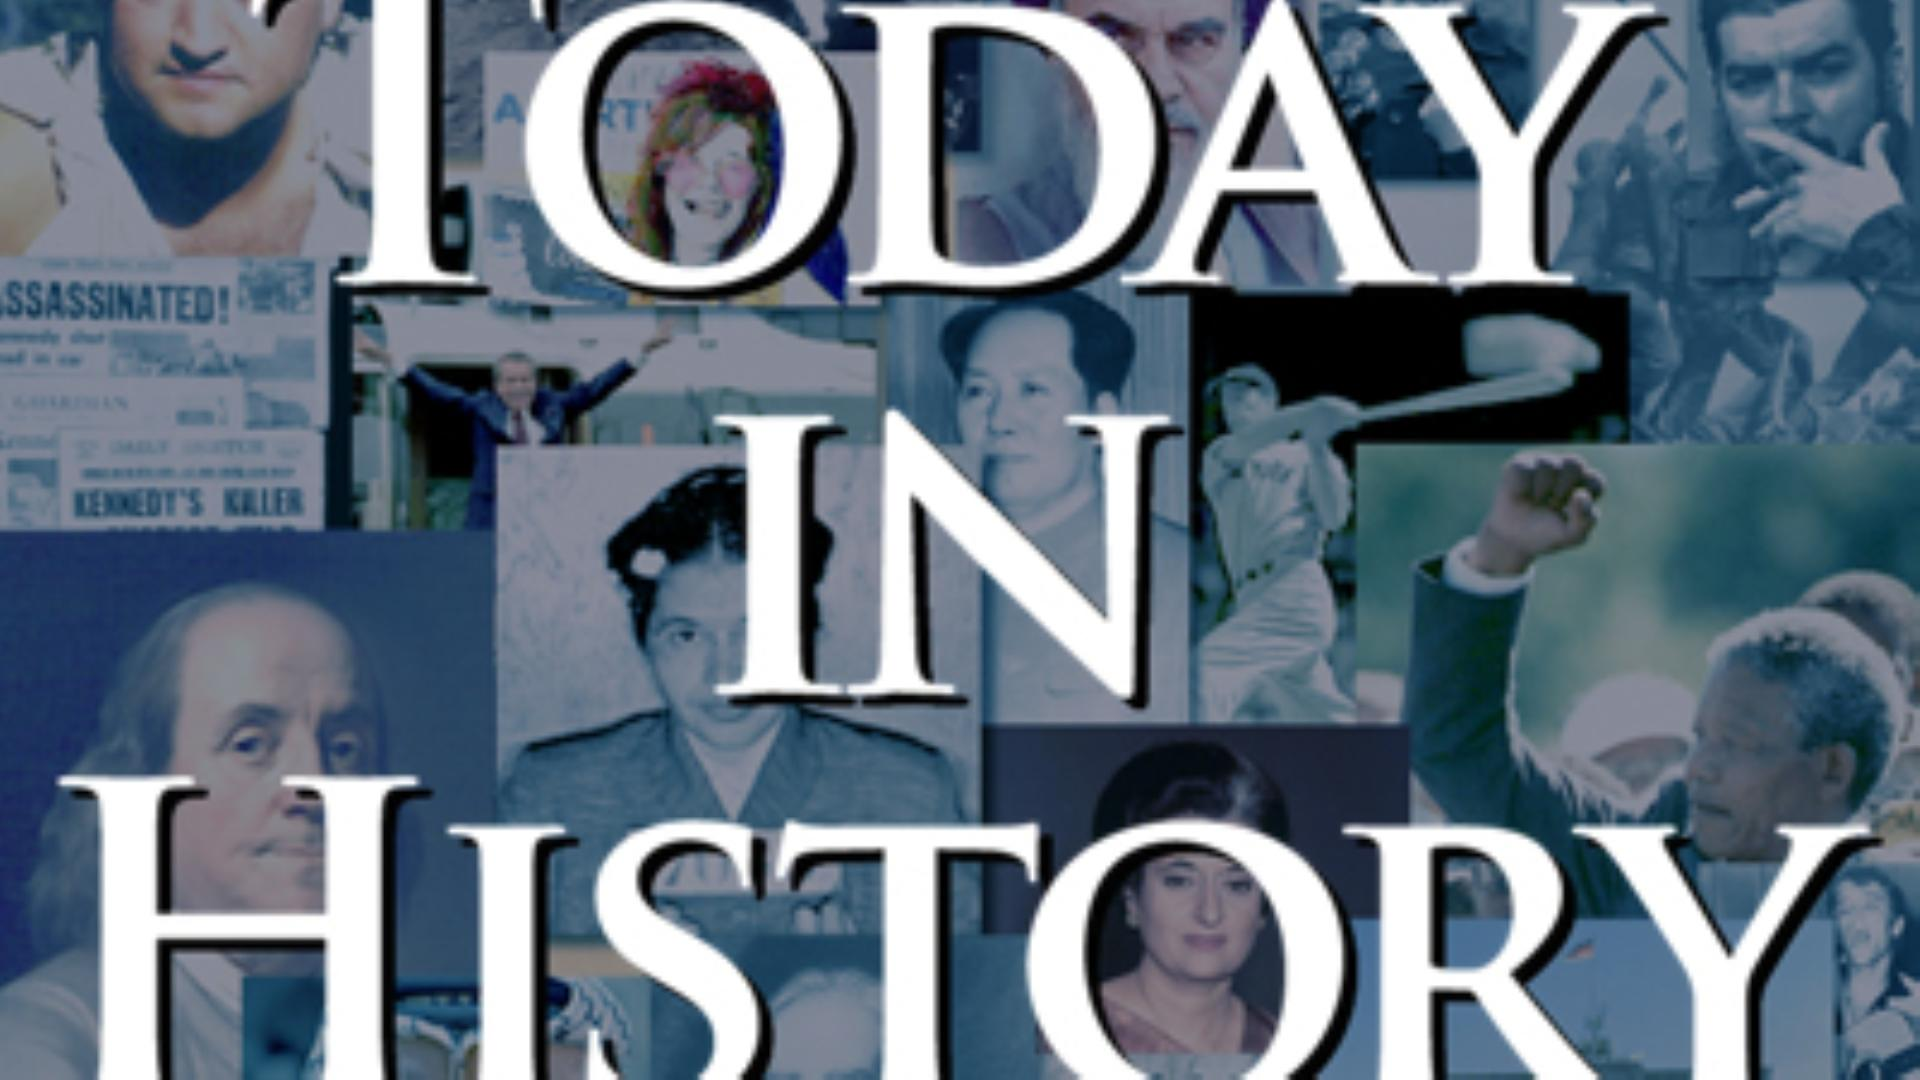 Today in History for May 23rd